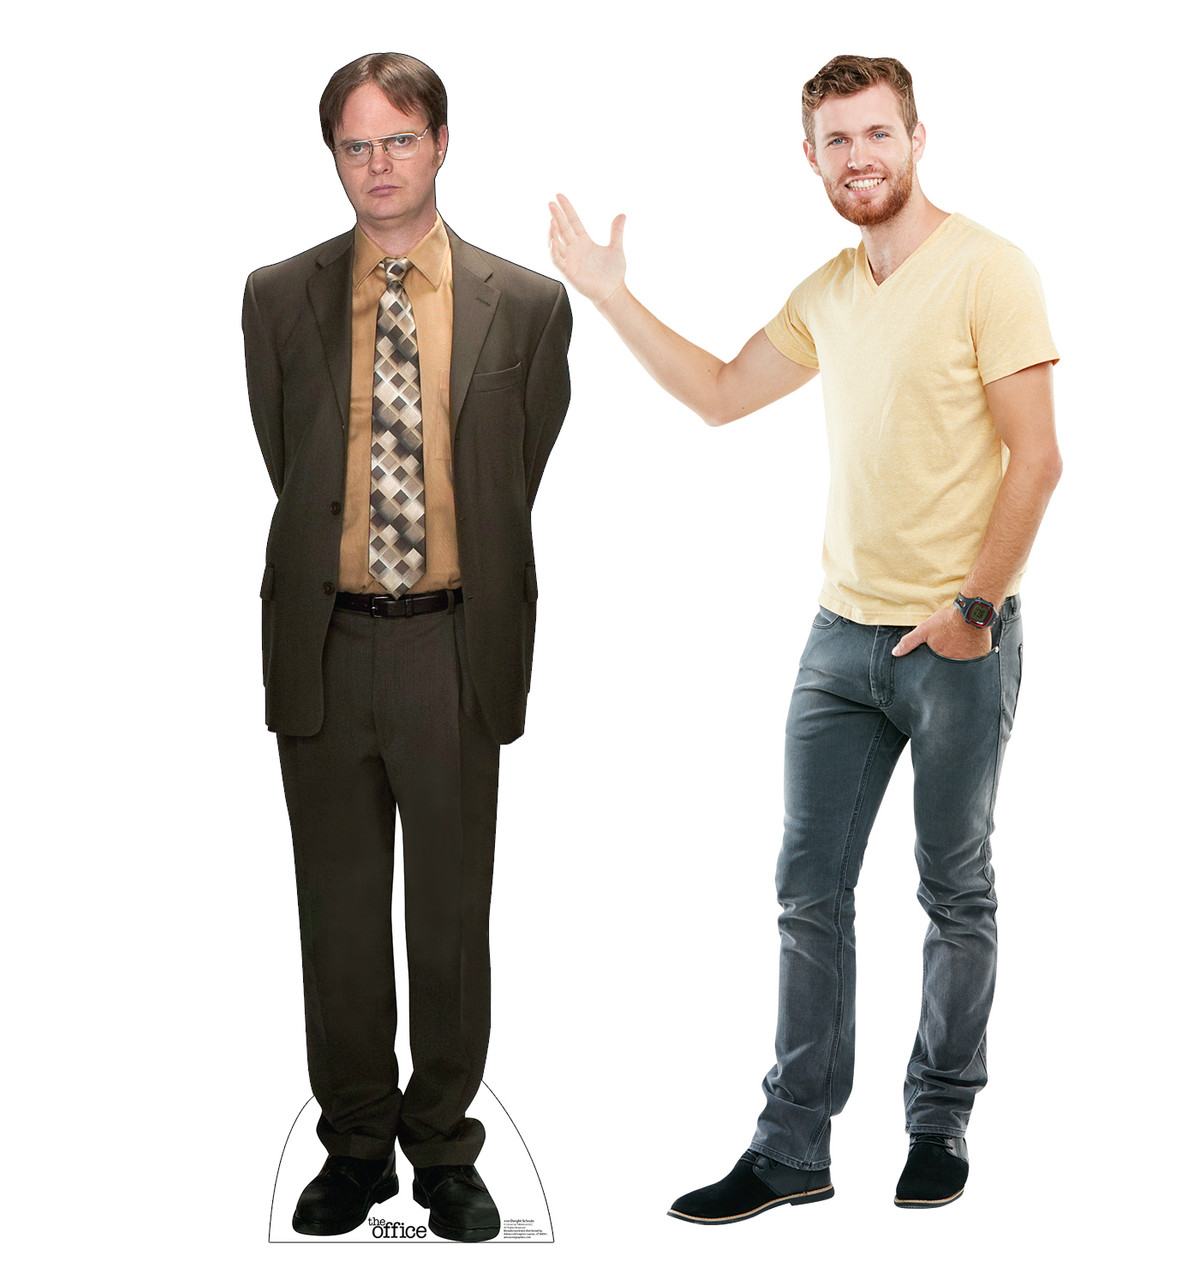 Life-size cardboard standee of Dwight Schrute from the Office TV show with model.